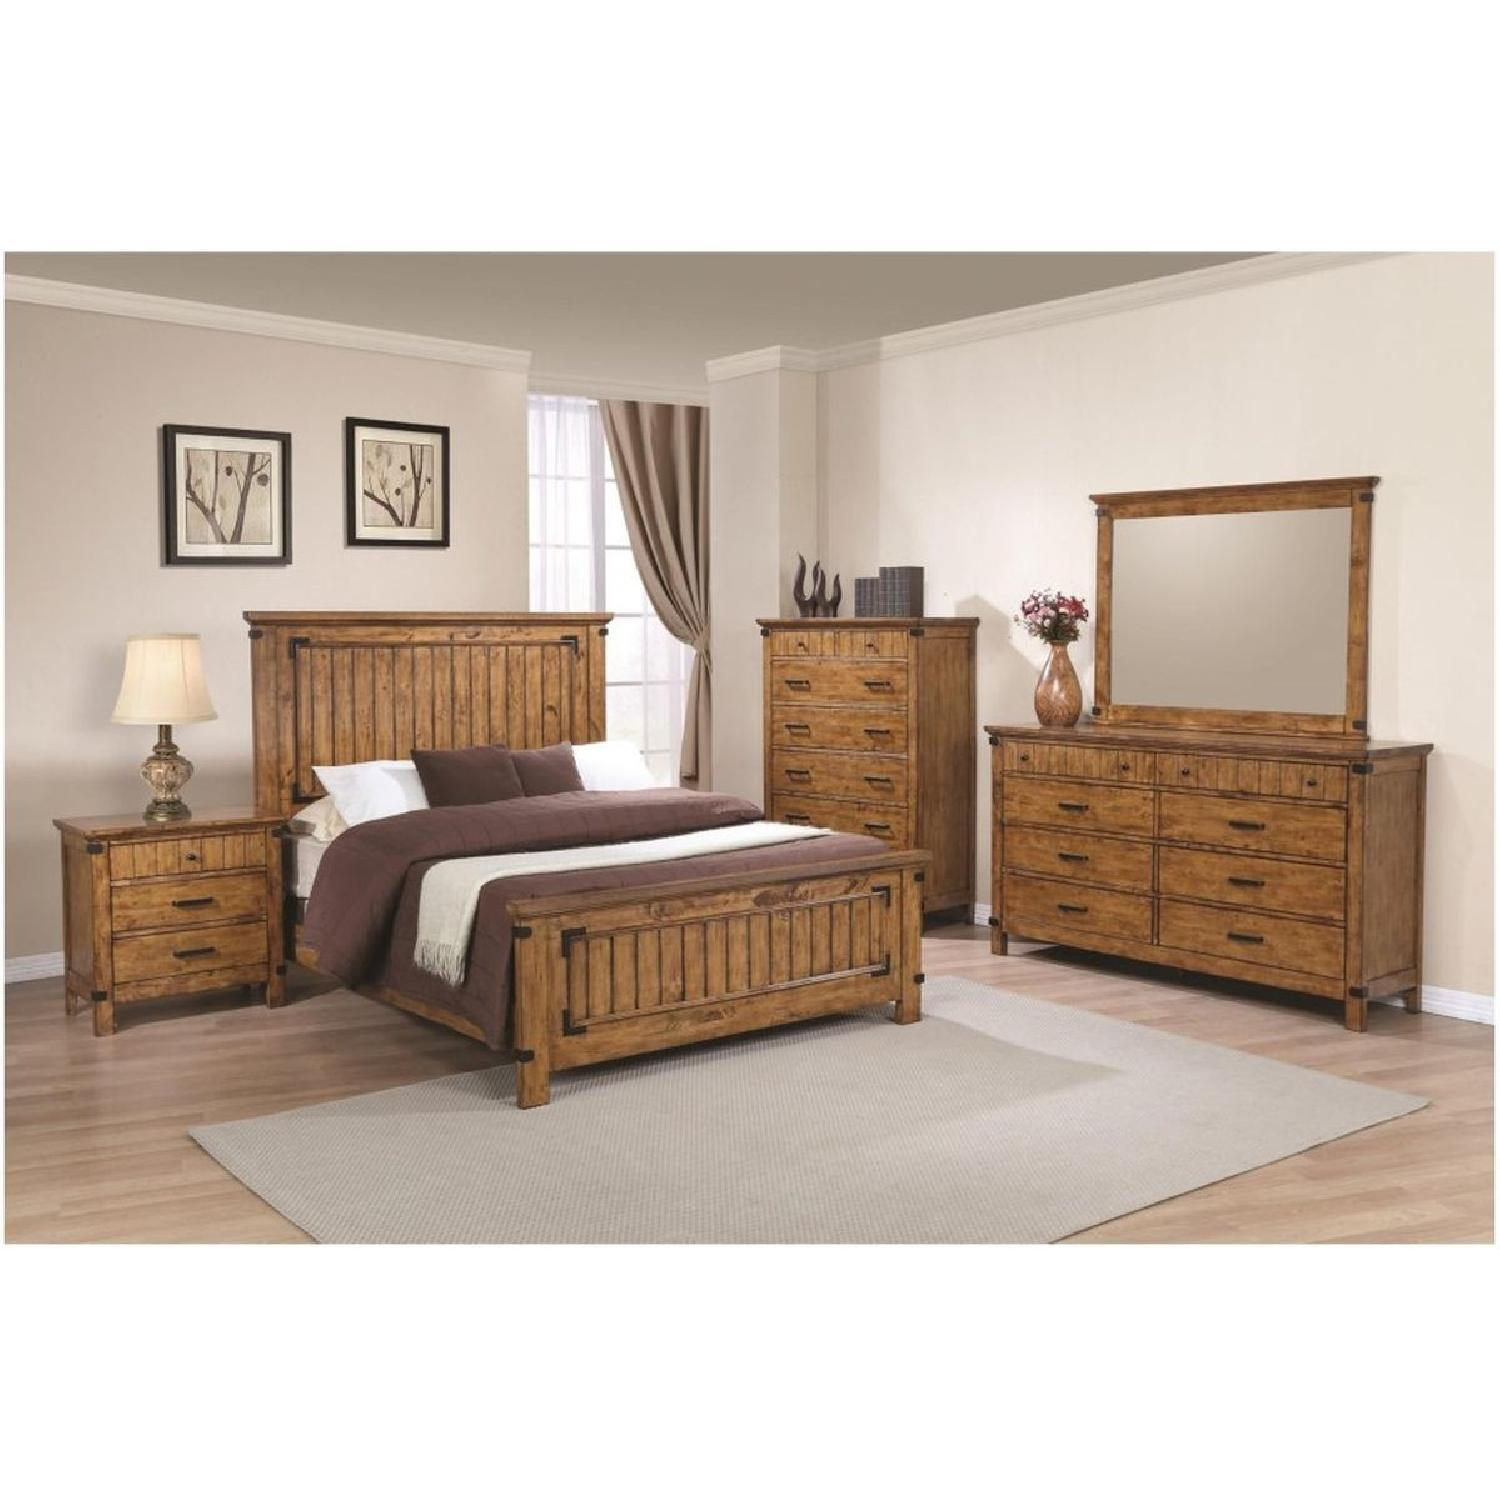 Rustic Style Chest in Warm Honey Brown Finish - image-1